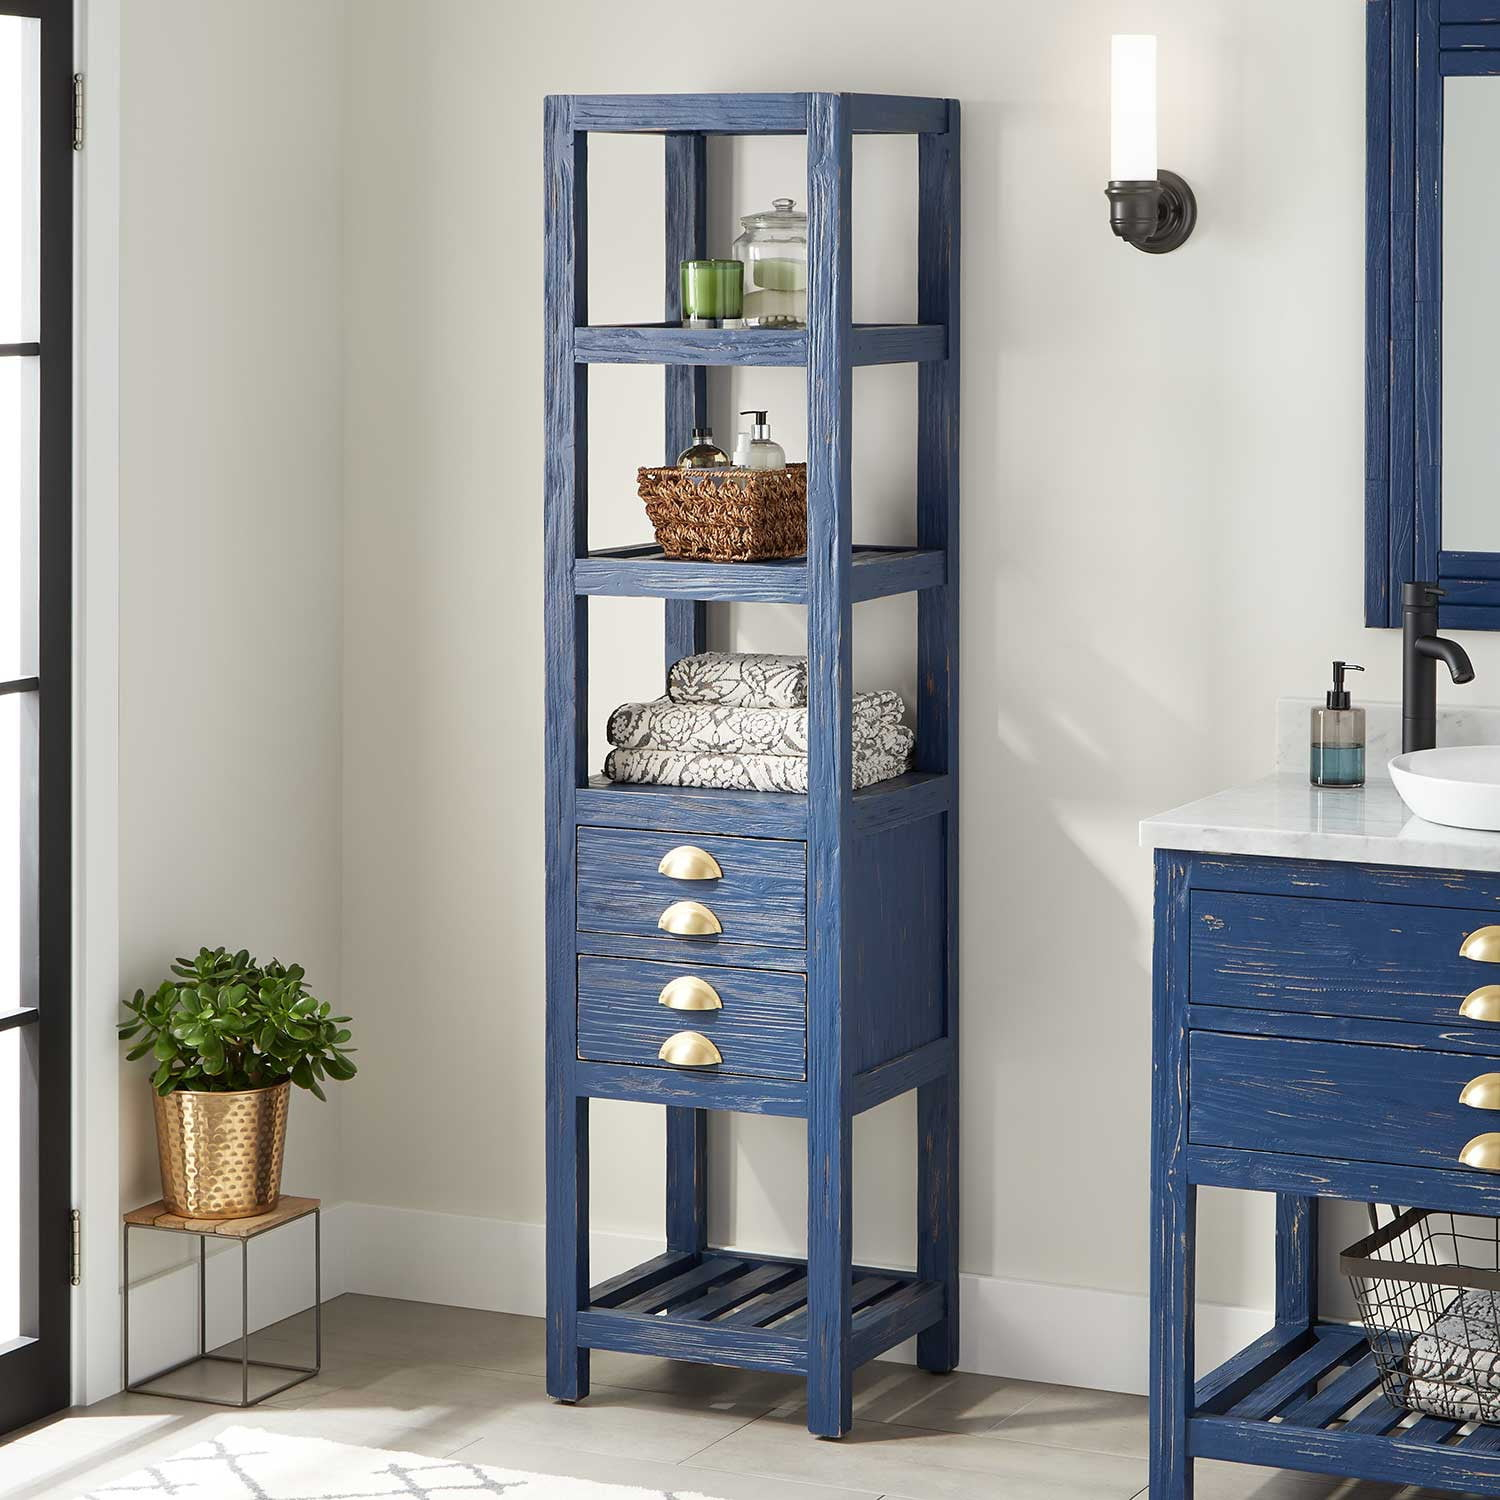 18 Benoist Bathroom Linen Storage Cabinet Rustic Navy Blue regarding dimensions 1500 X 1500